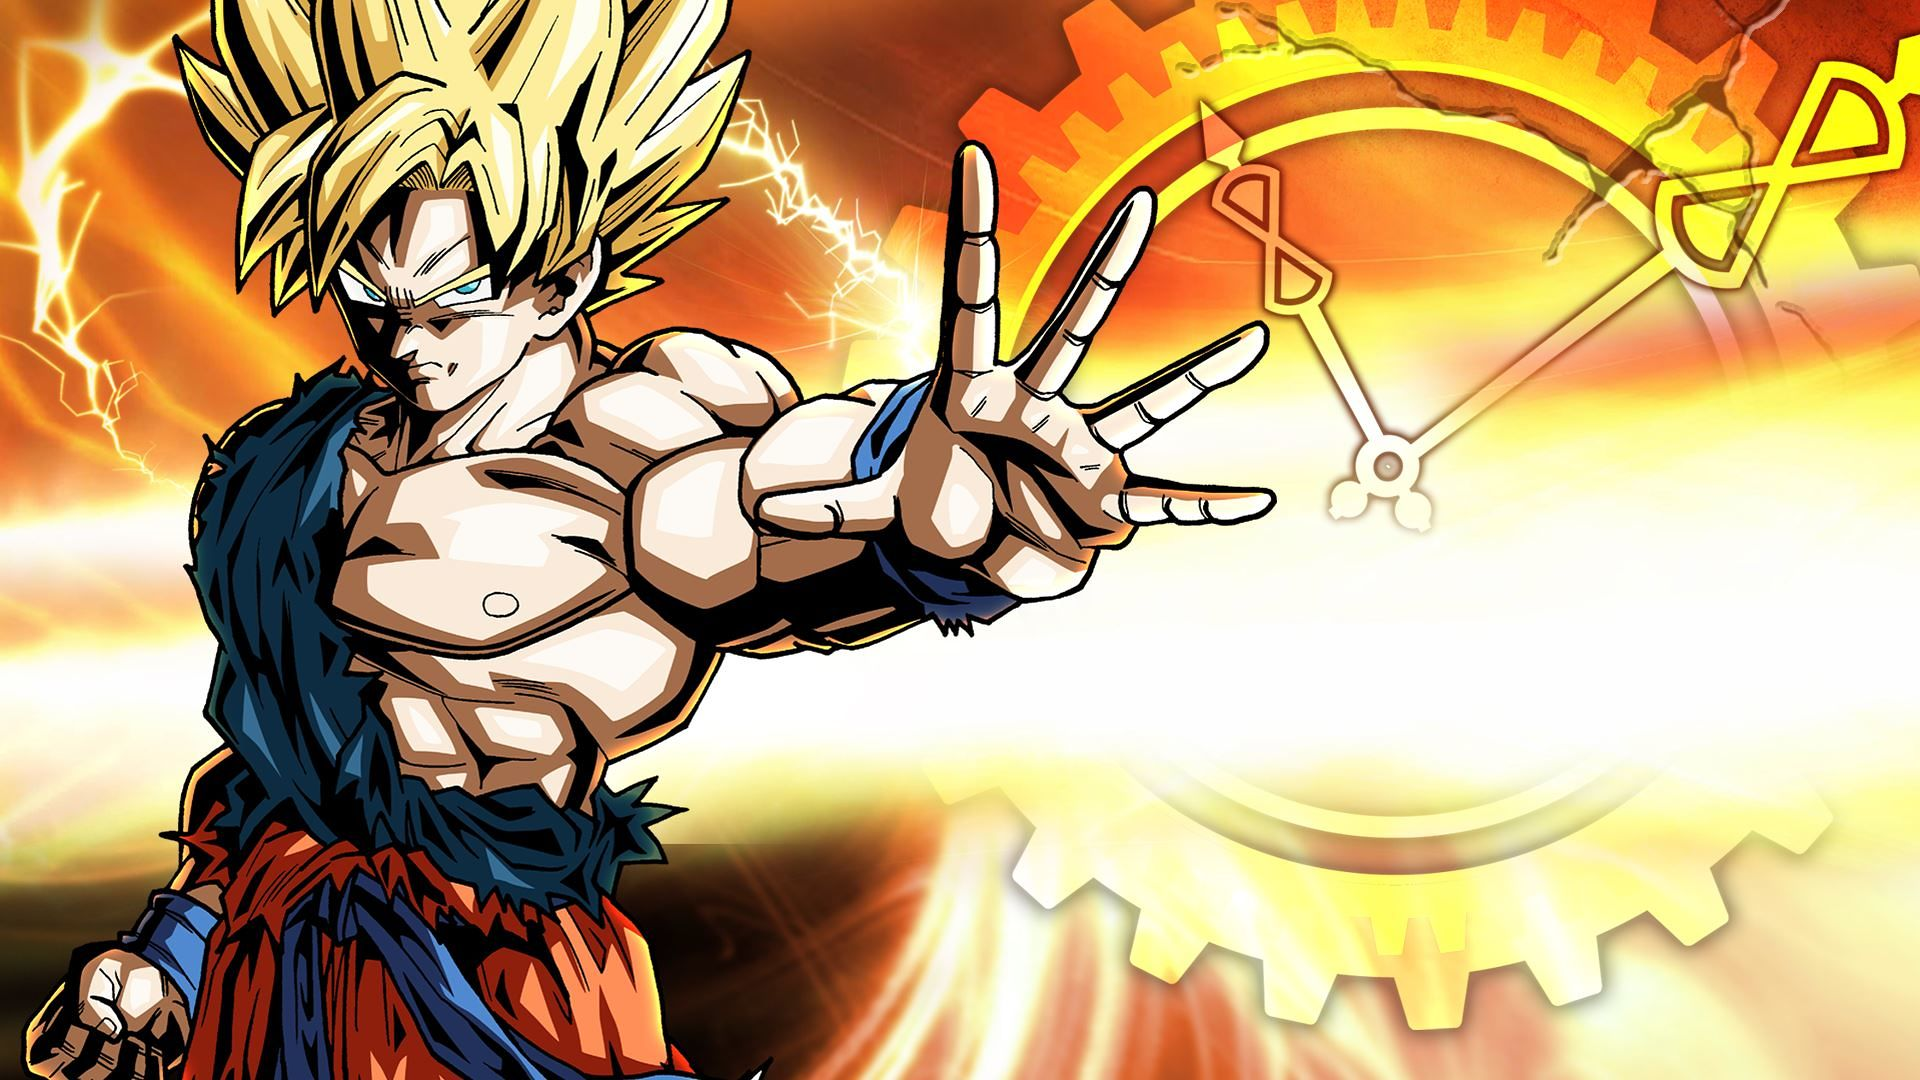 Dragonball Z Wallpapers Anime Hq Dragonball Z Pictures